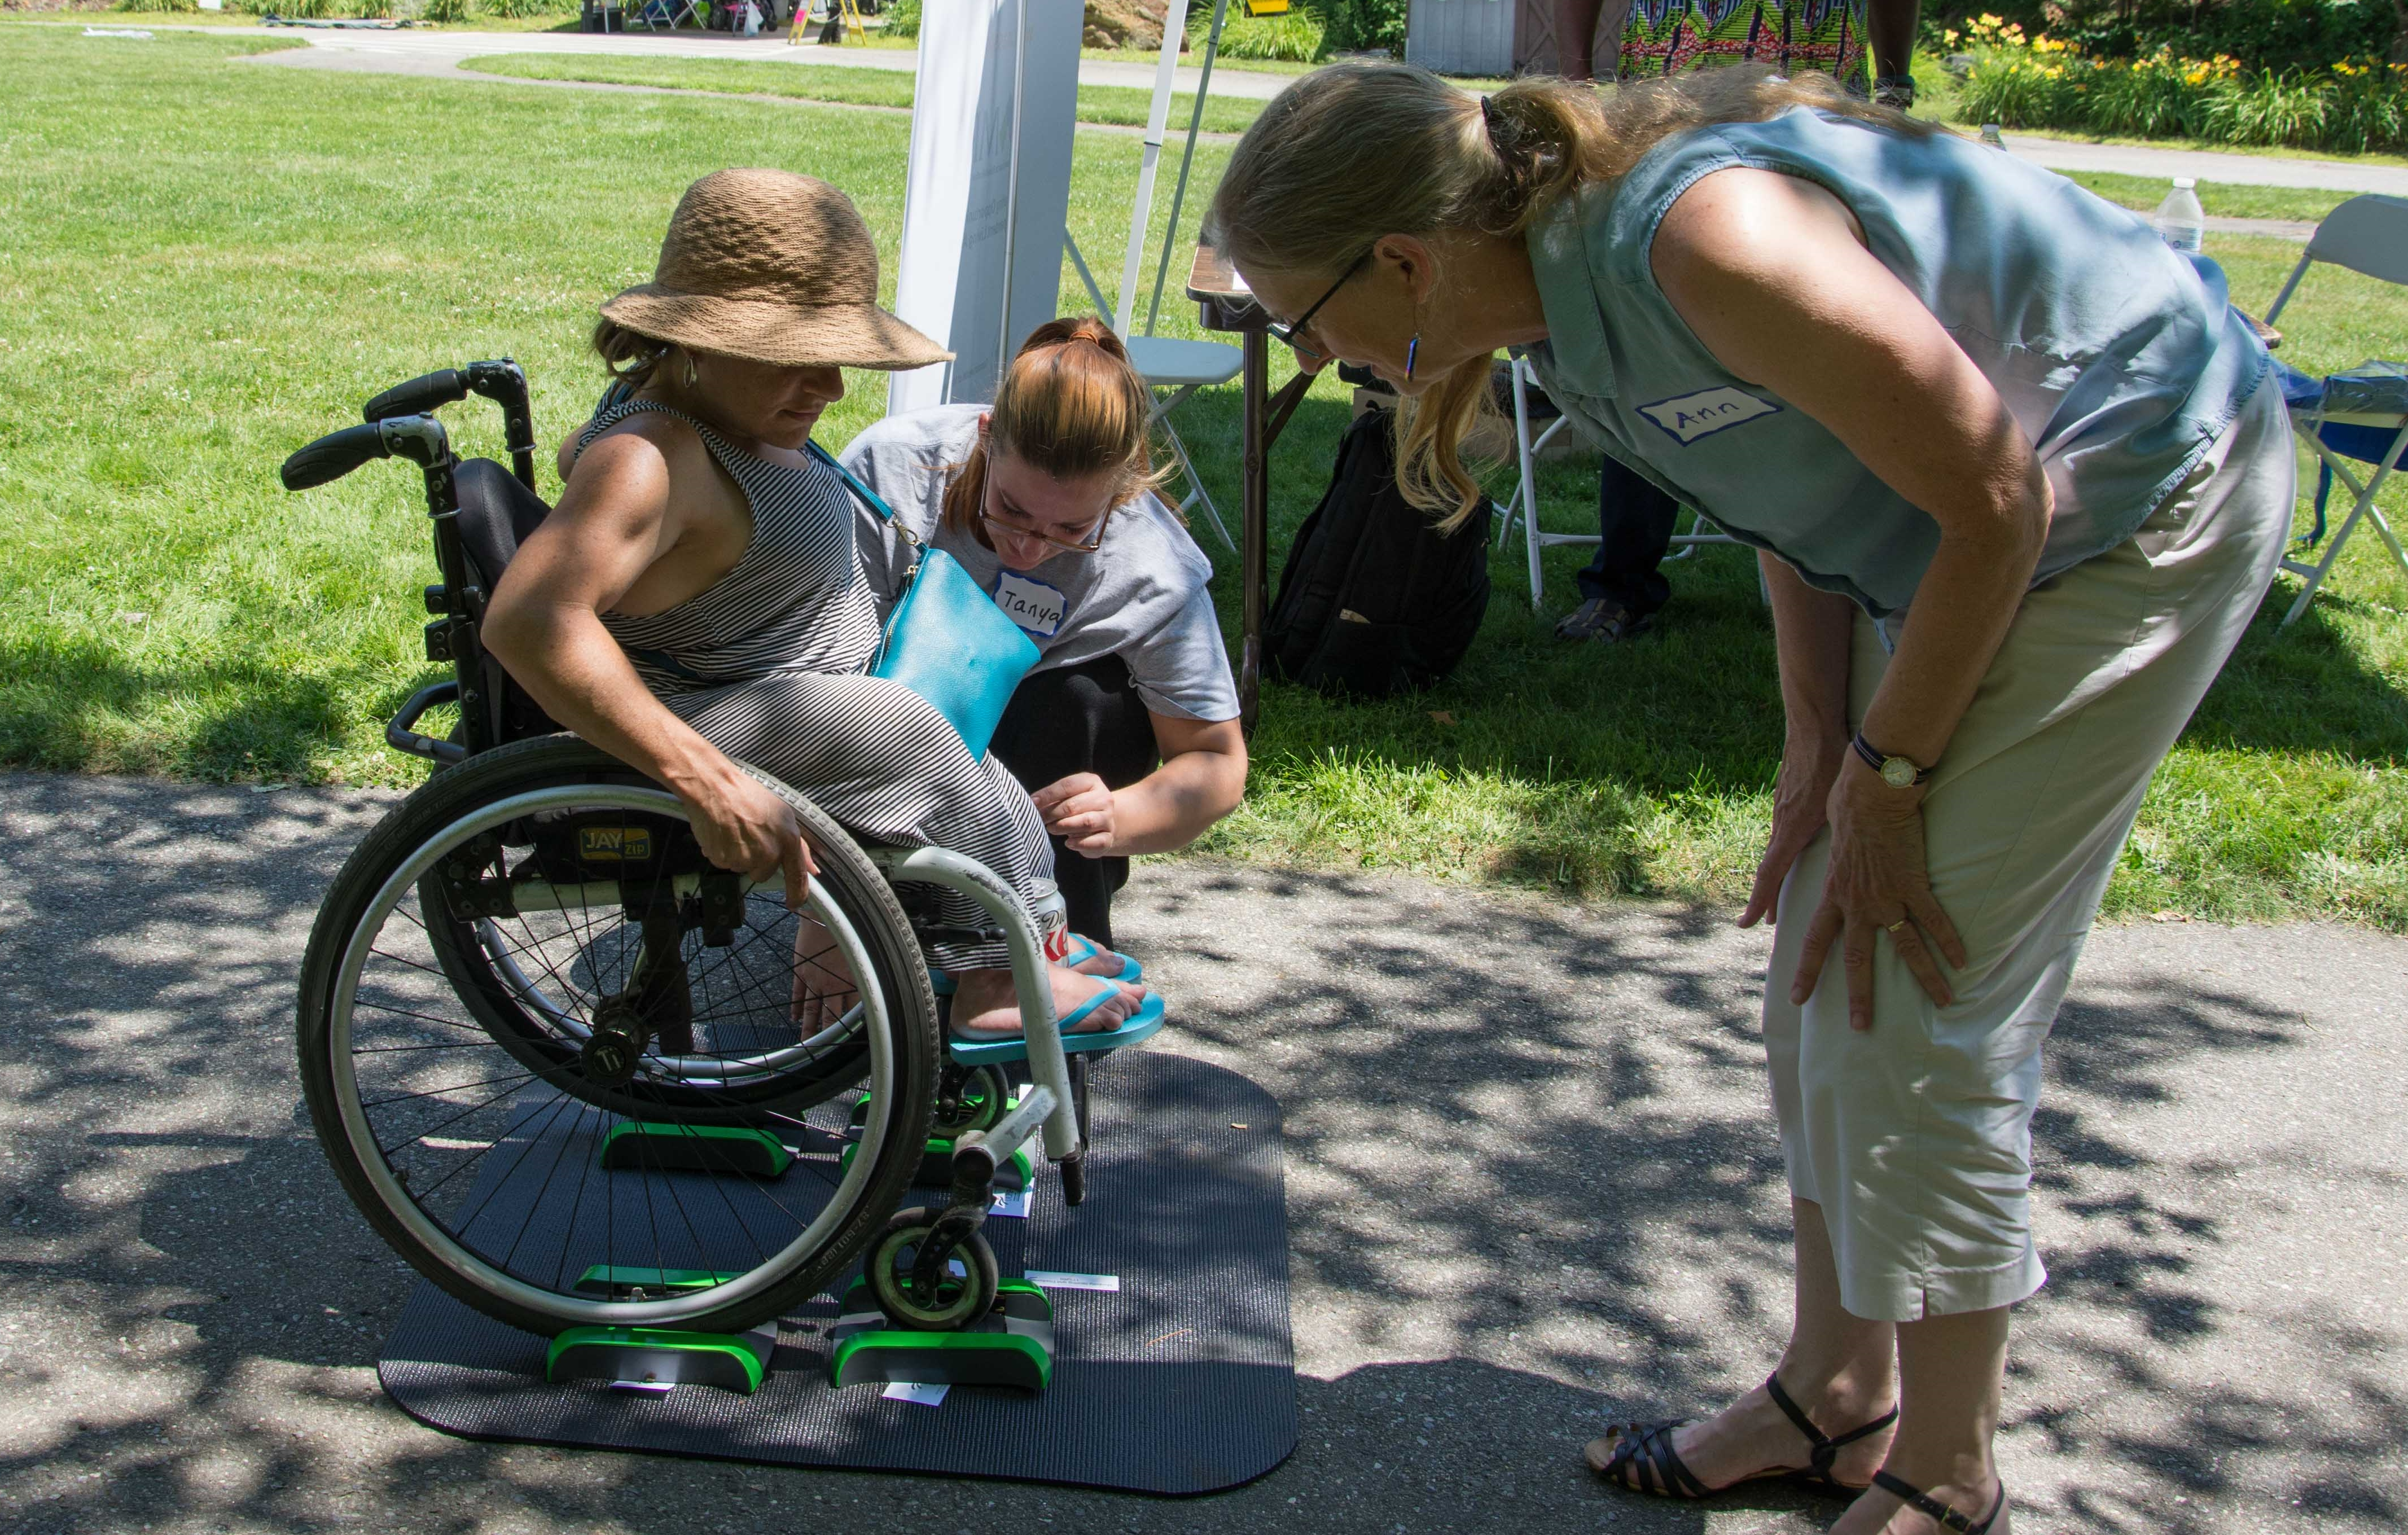 A woman in a wheelchair tries out a portable scale with the assistance of two women